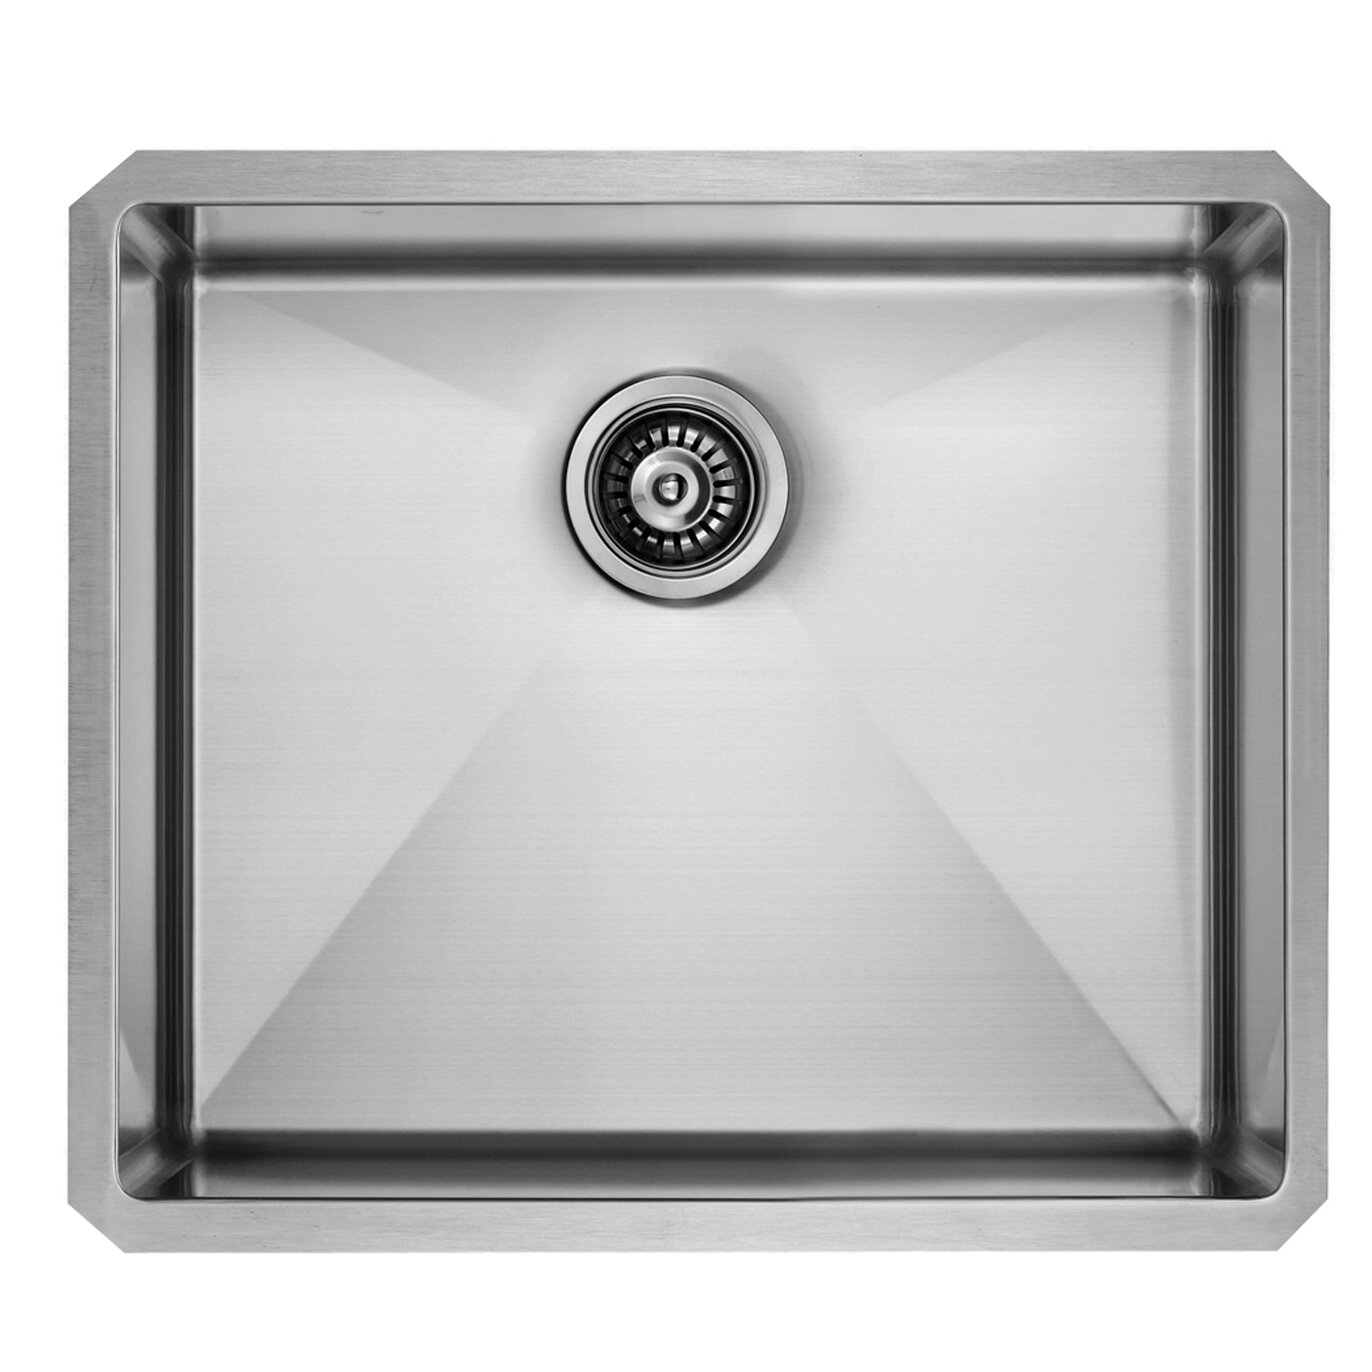 Vigo Undermount Single Bowl 16 Gauge Stainless Steel. Diy Kitchen Island Ideas. Unclogging A Kitchen Sink. Must Have Kitchen Appliances. California Pizza Kitchen Phone Number. Fred Kitchen. Jbj Soul Kitchen. Vintage Kitchen Stoves. Micro Kitchen